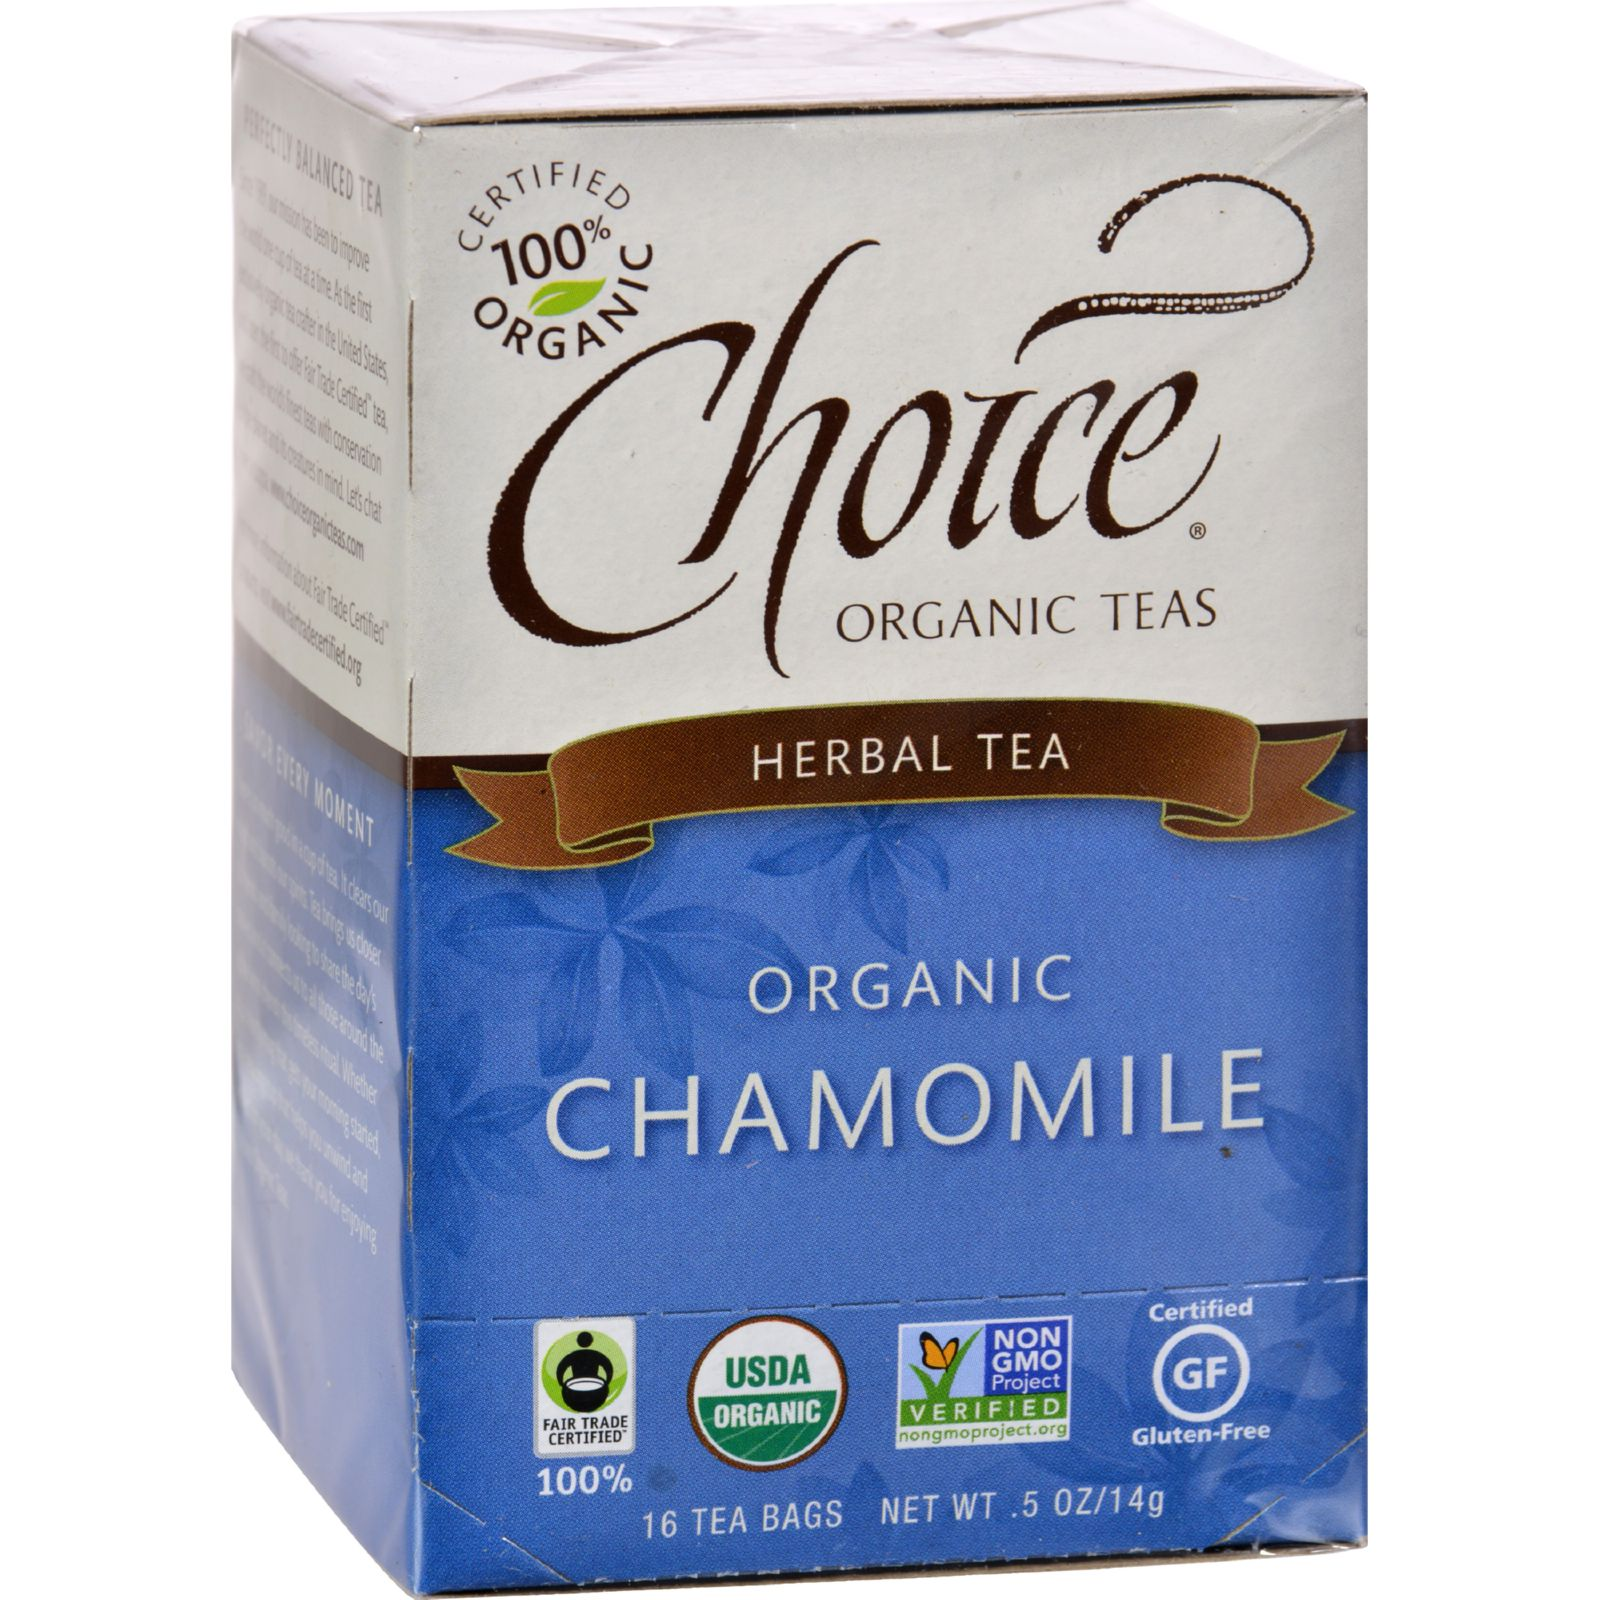 CHOICE ORGANIC TEAS Chamomile Herb Organic Tea 16 BAG